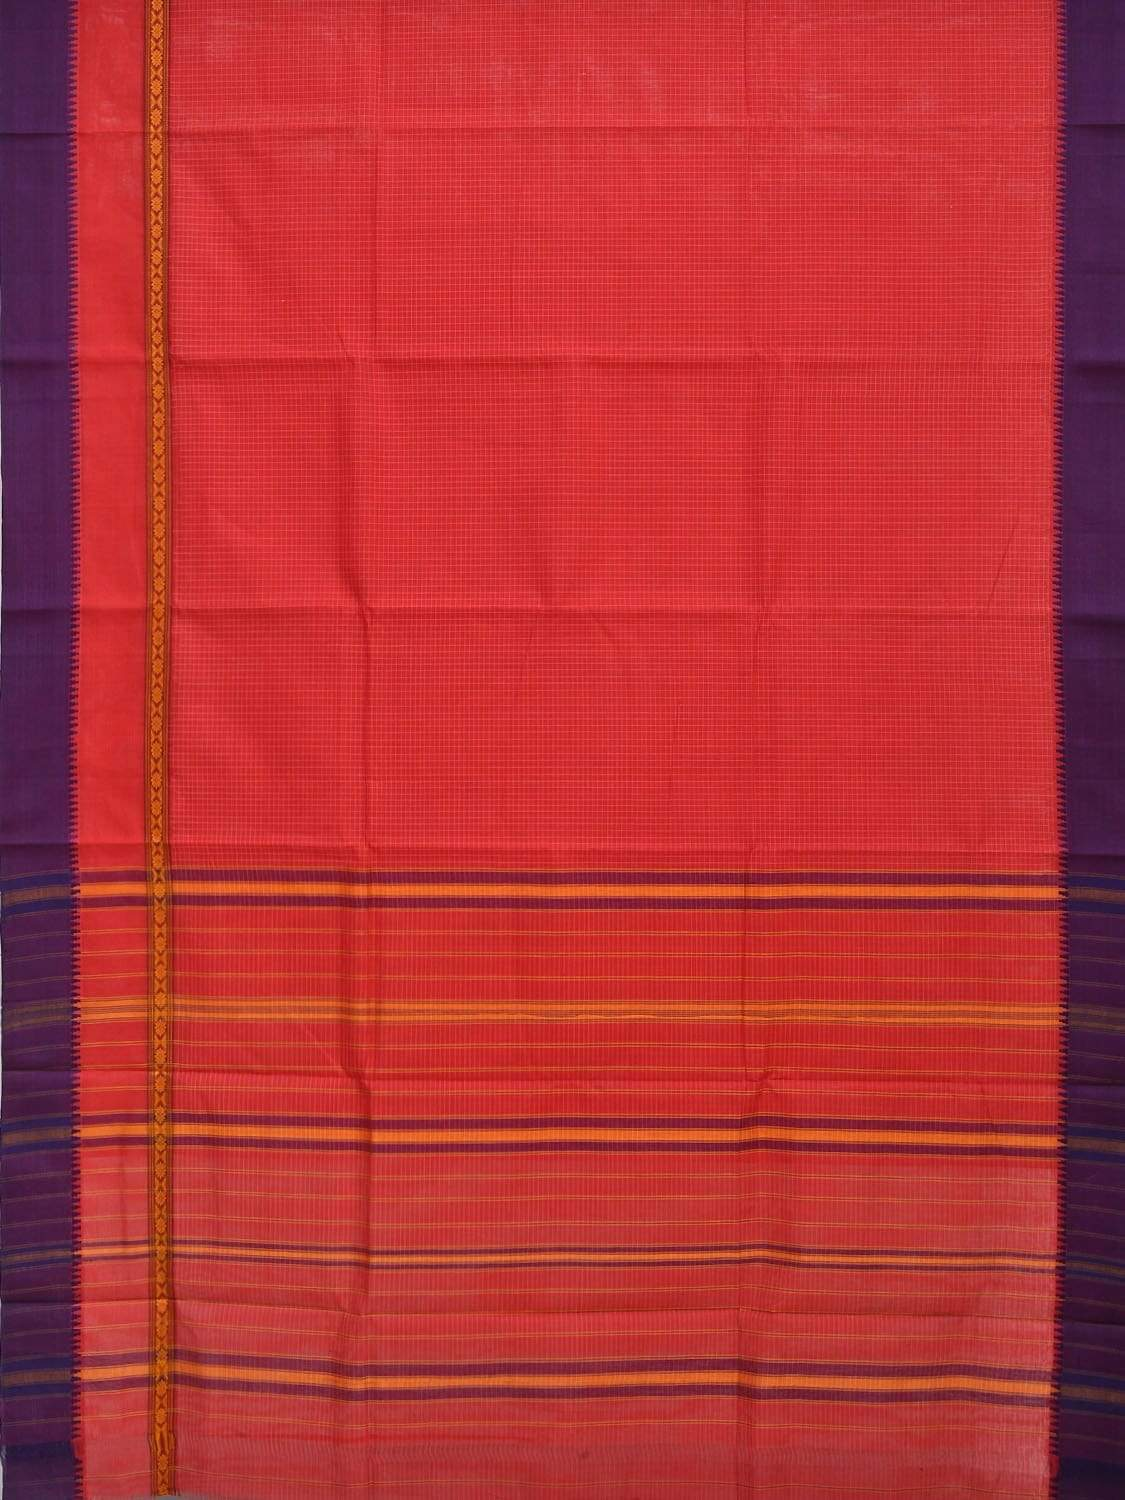 Red Narayanpet Cotton Handloom Saree with Checks and One Side Big Border Design No Blouse np0259